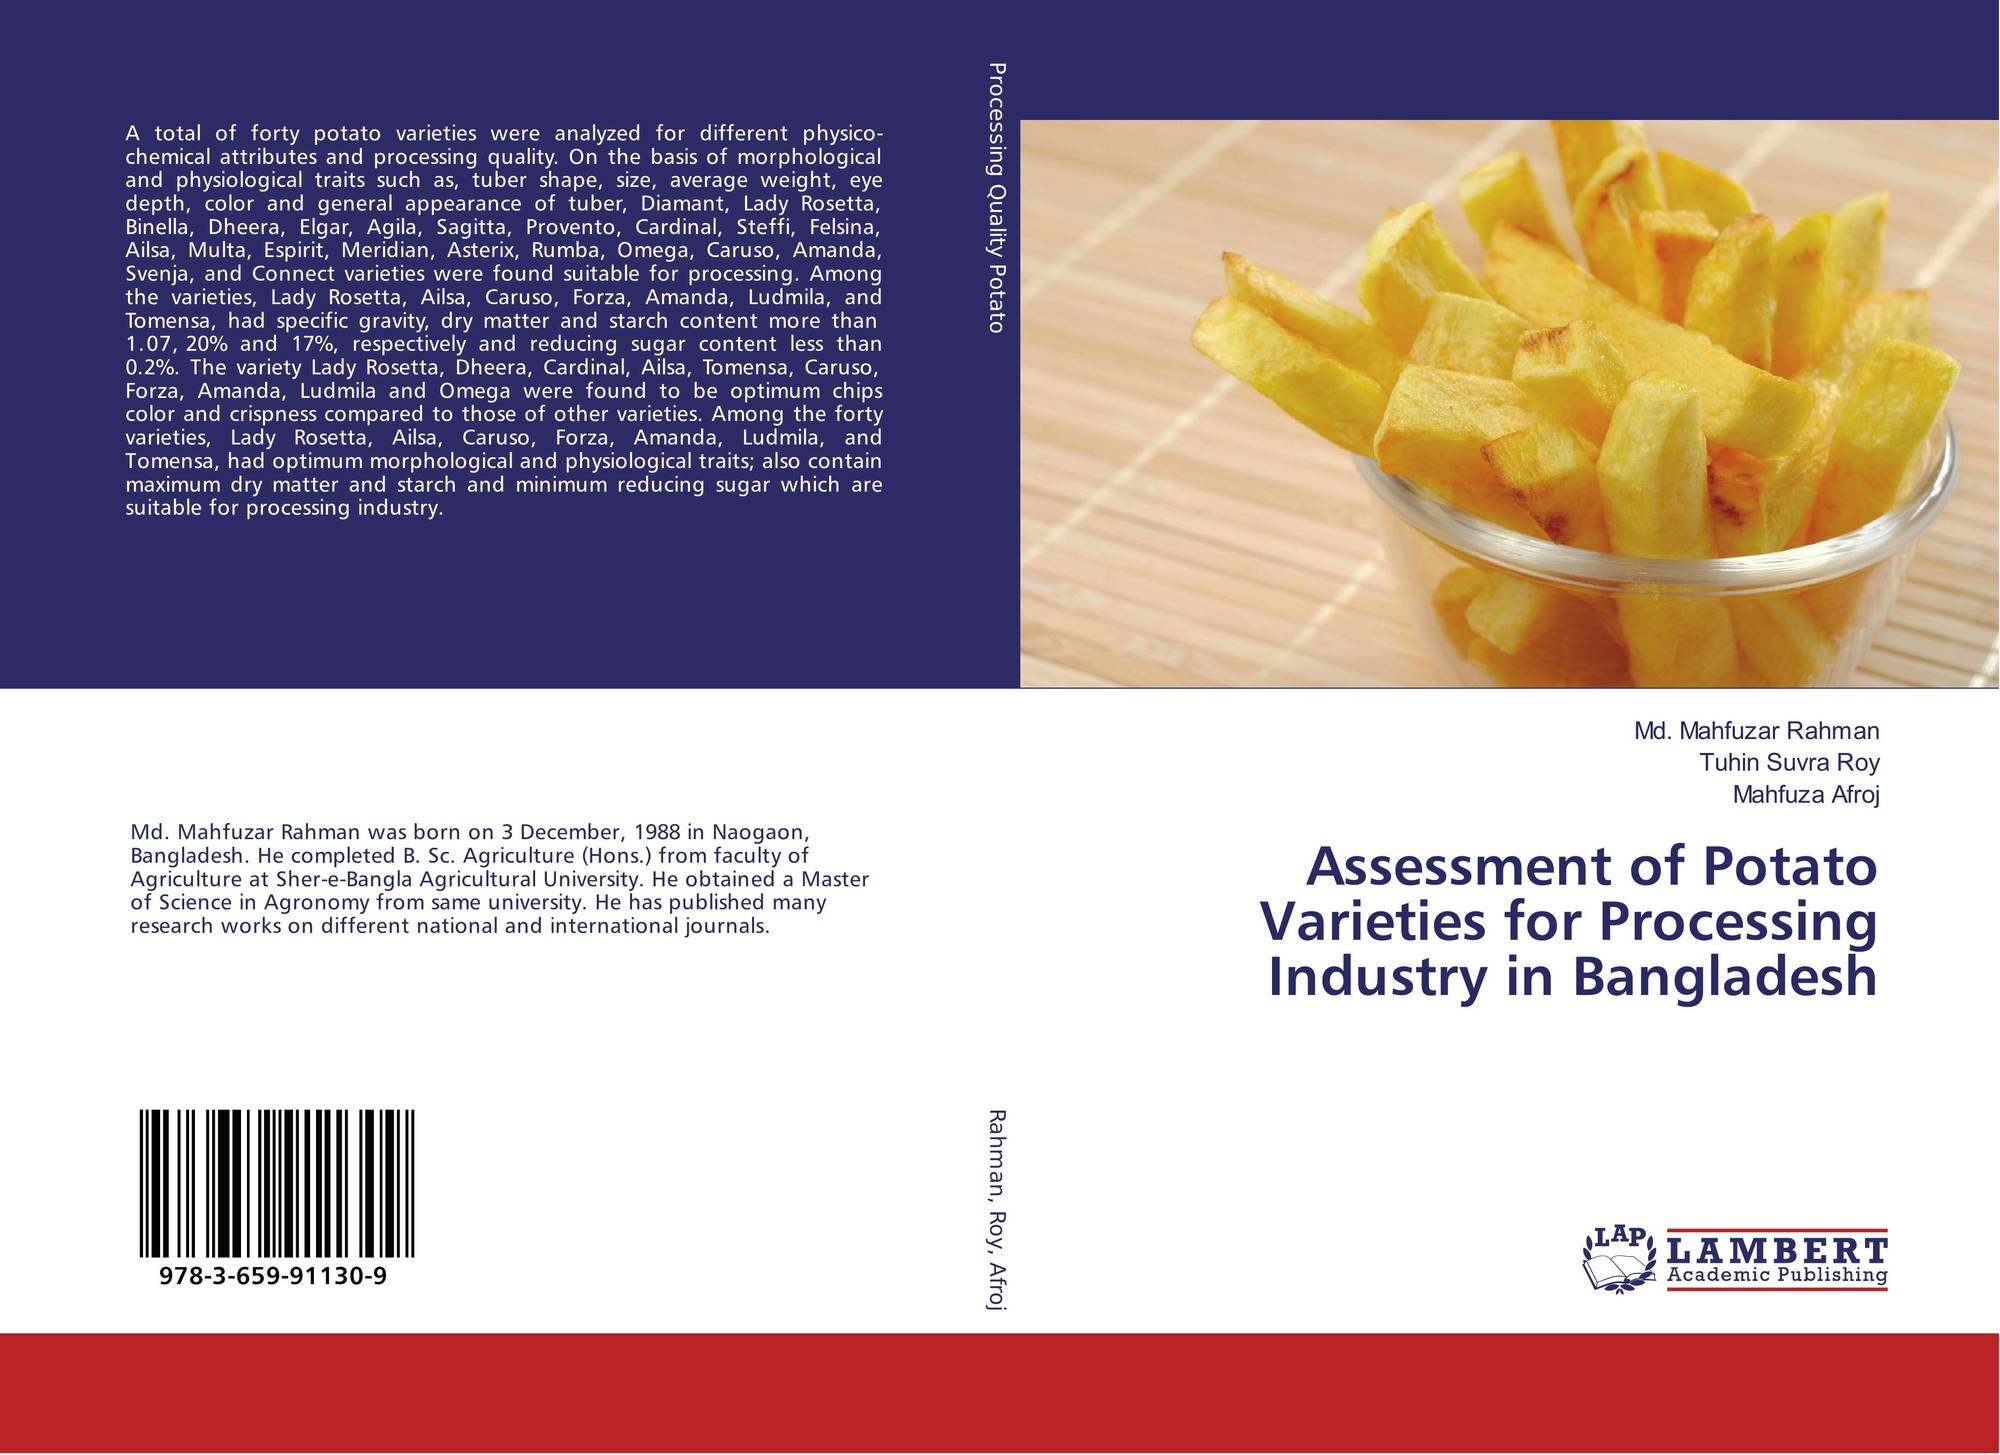 Assessment of Potato Varieties for Processing Industry in Bangladesh